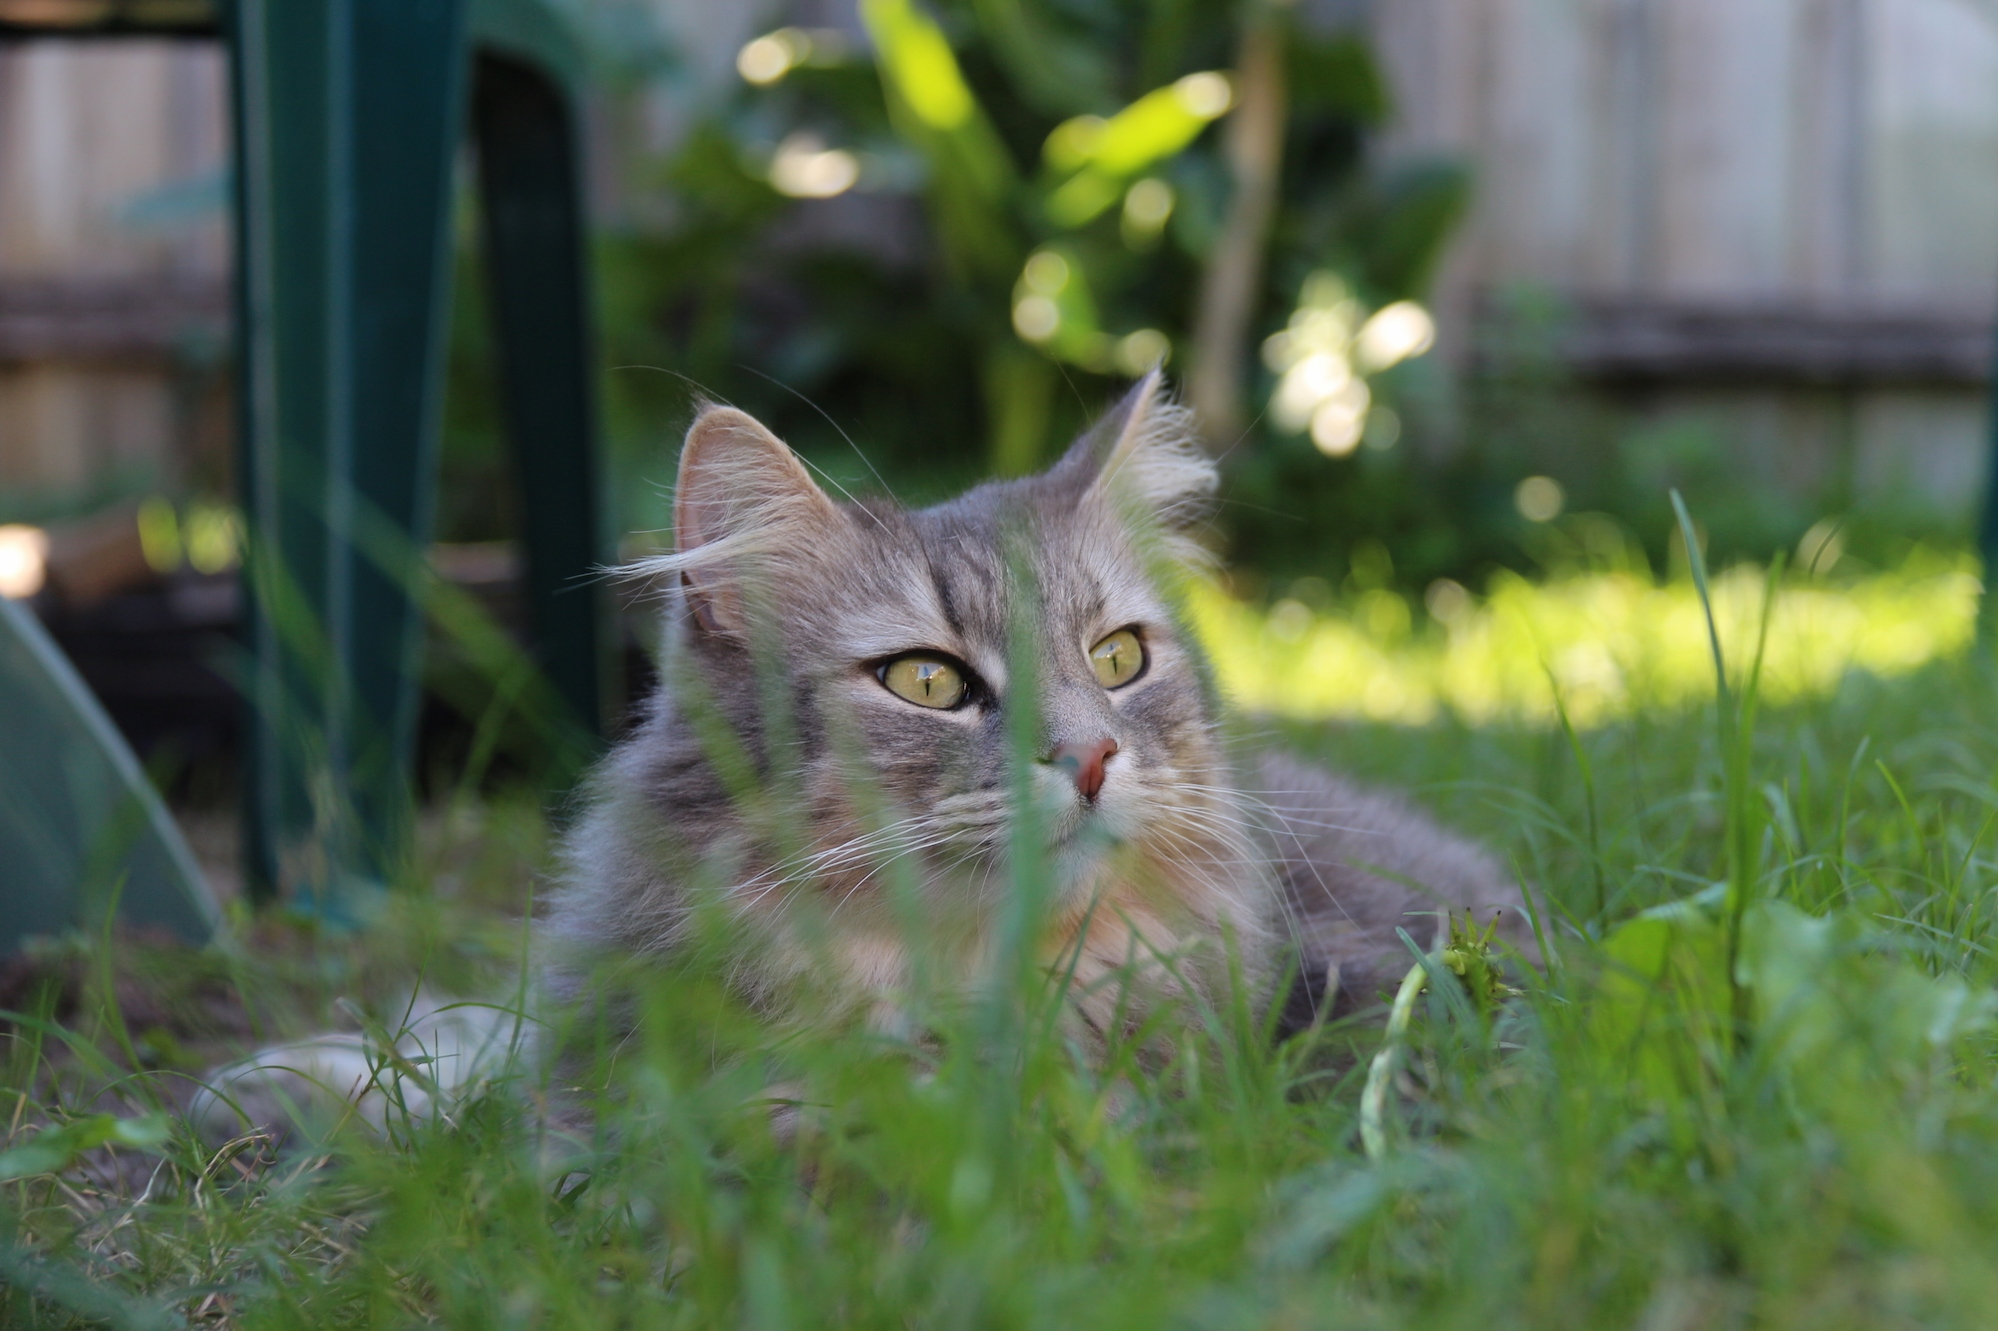 Our cat luxe enjoying our backyard